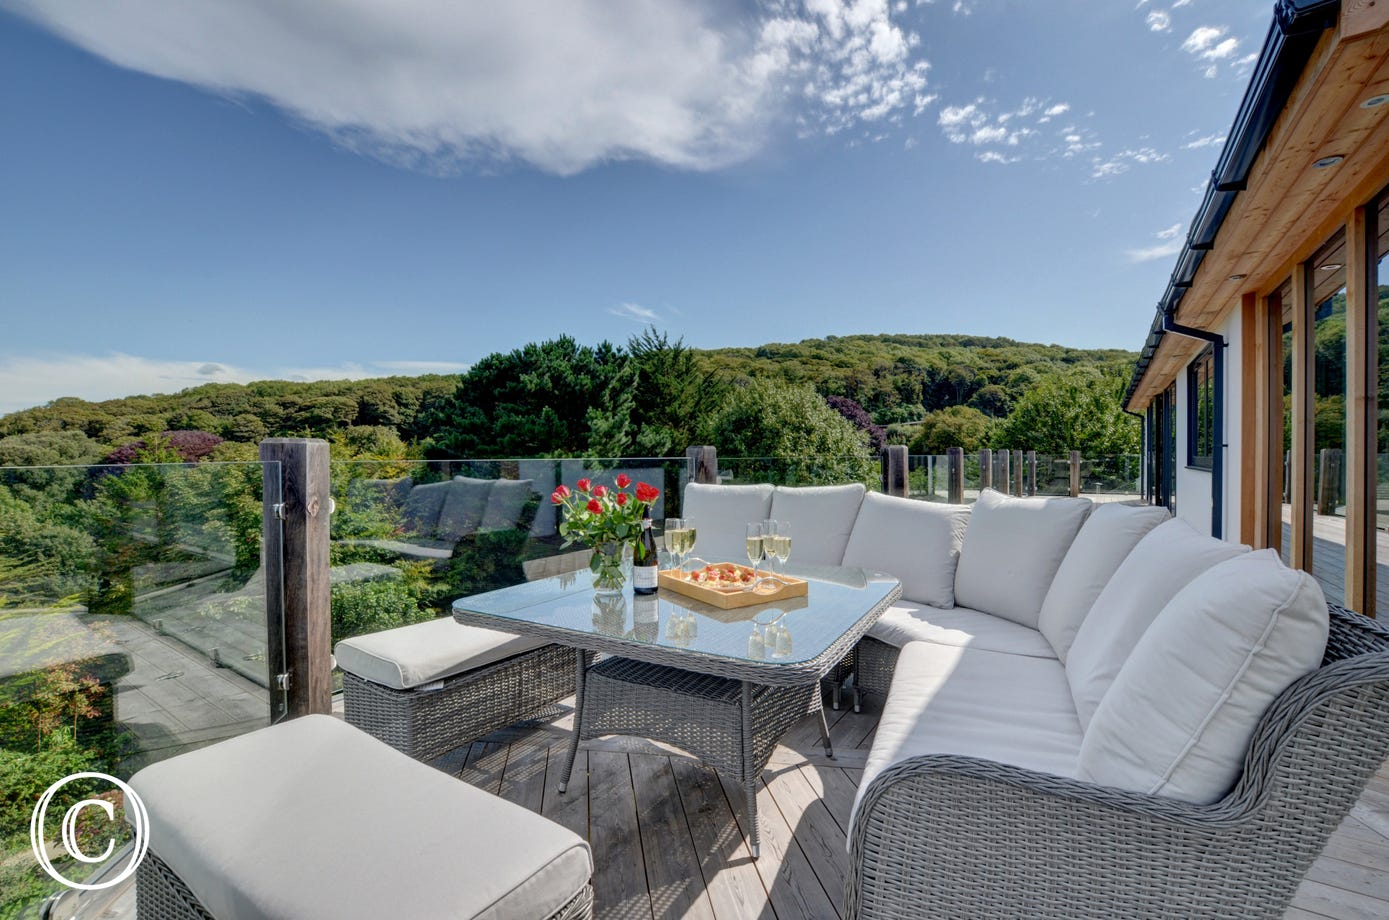 Beautifully comfortable rattan garden furniture on the top terrace